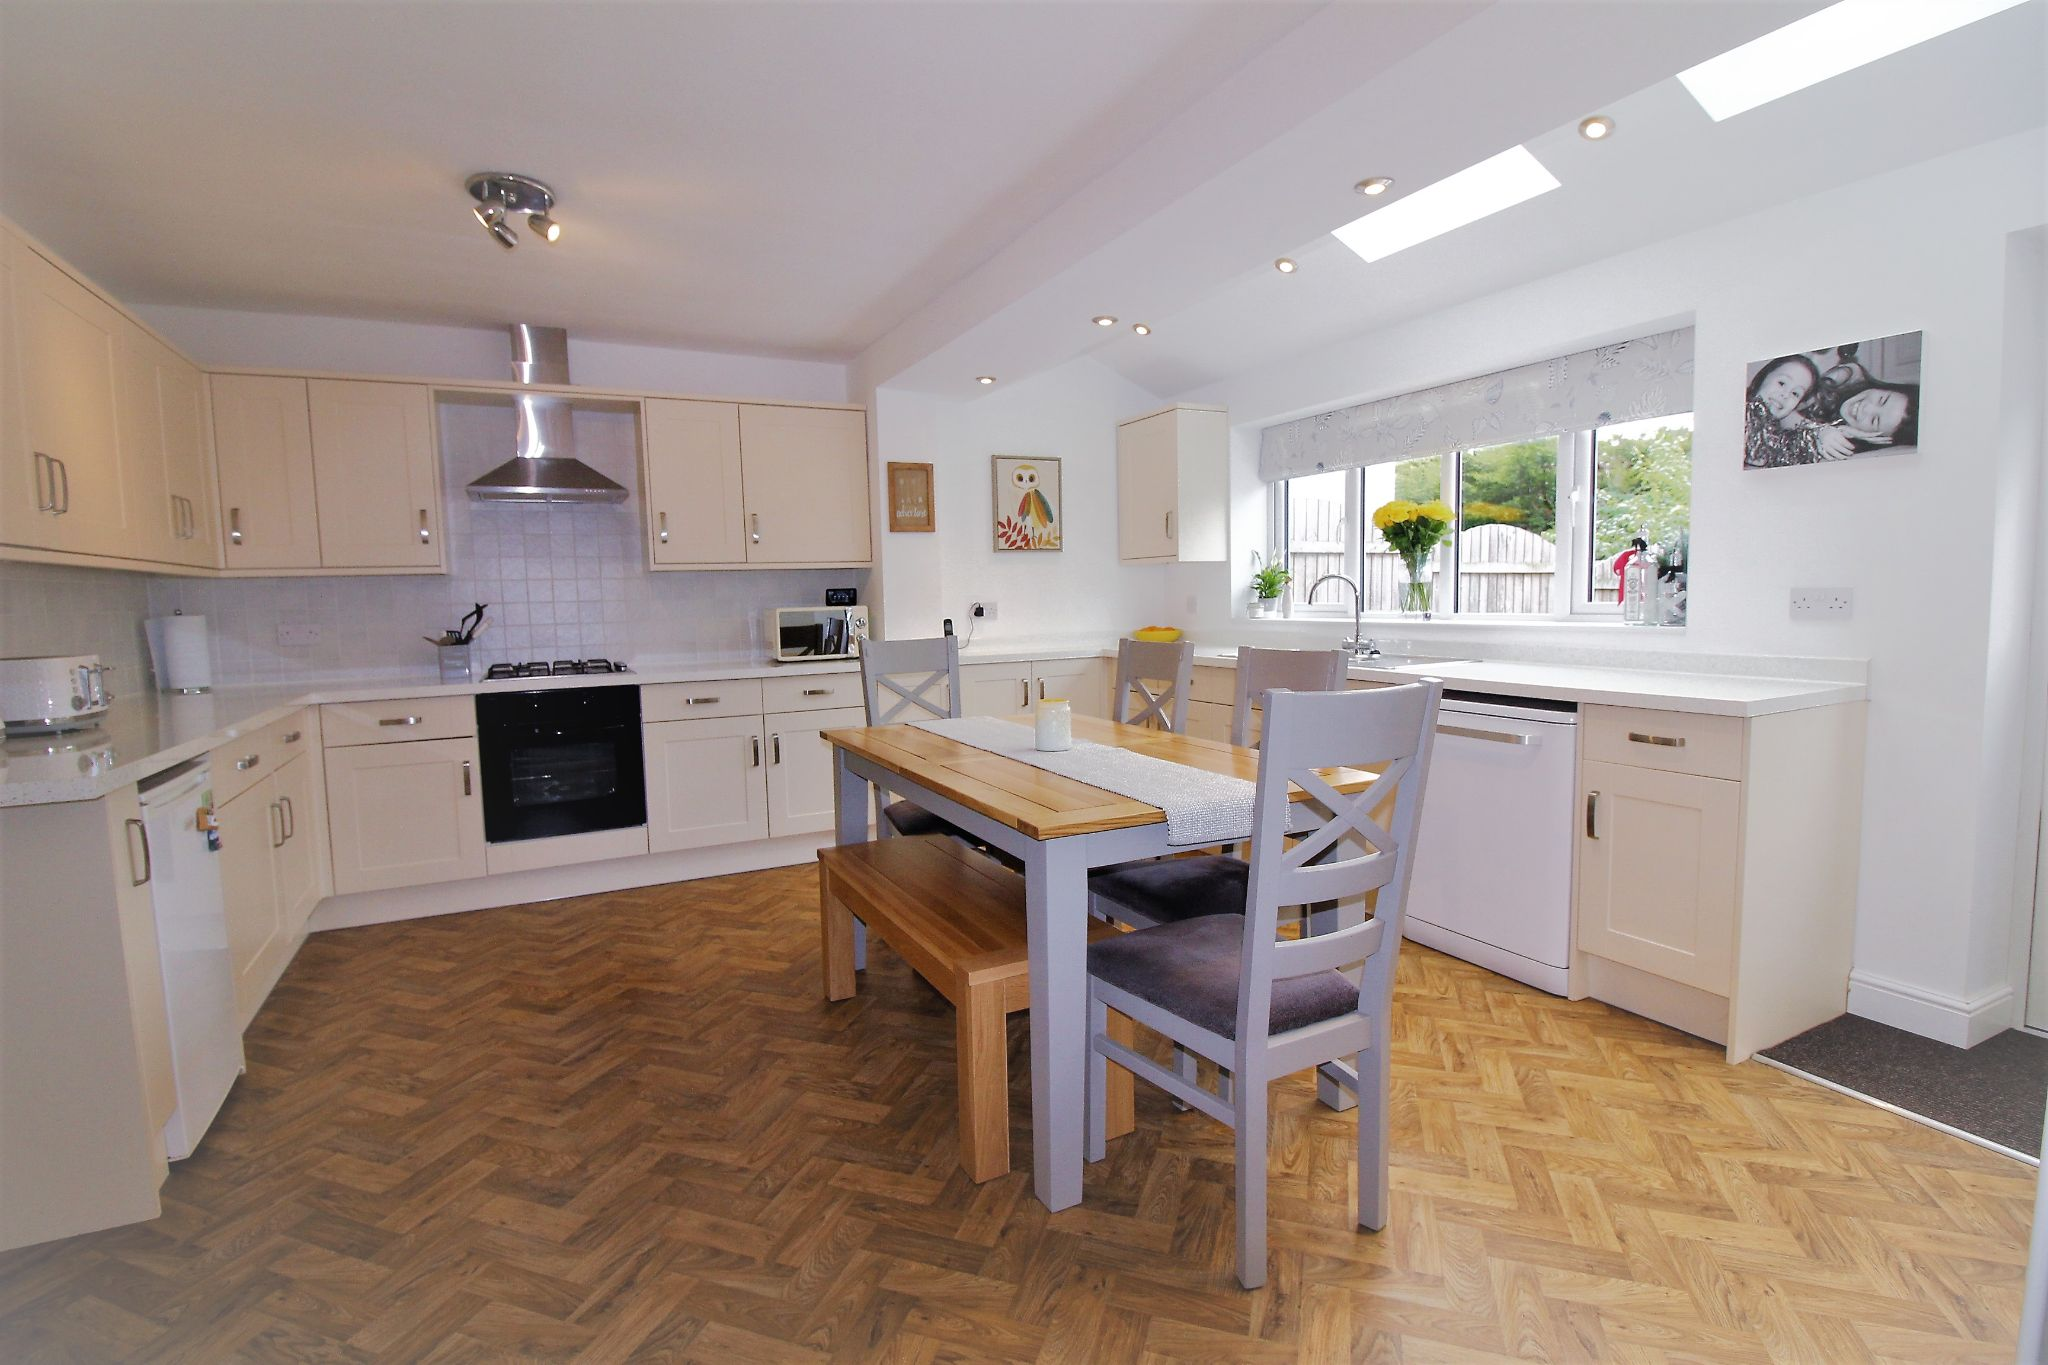 4 bedroom semi-detached house SSTC in Solihull - Photograph 2.